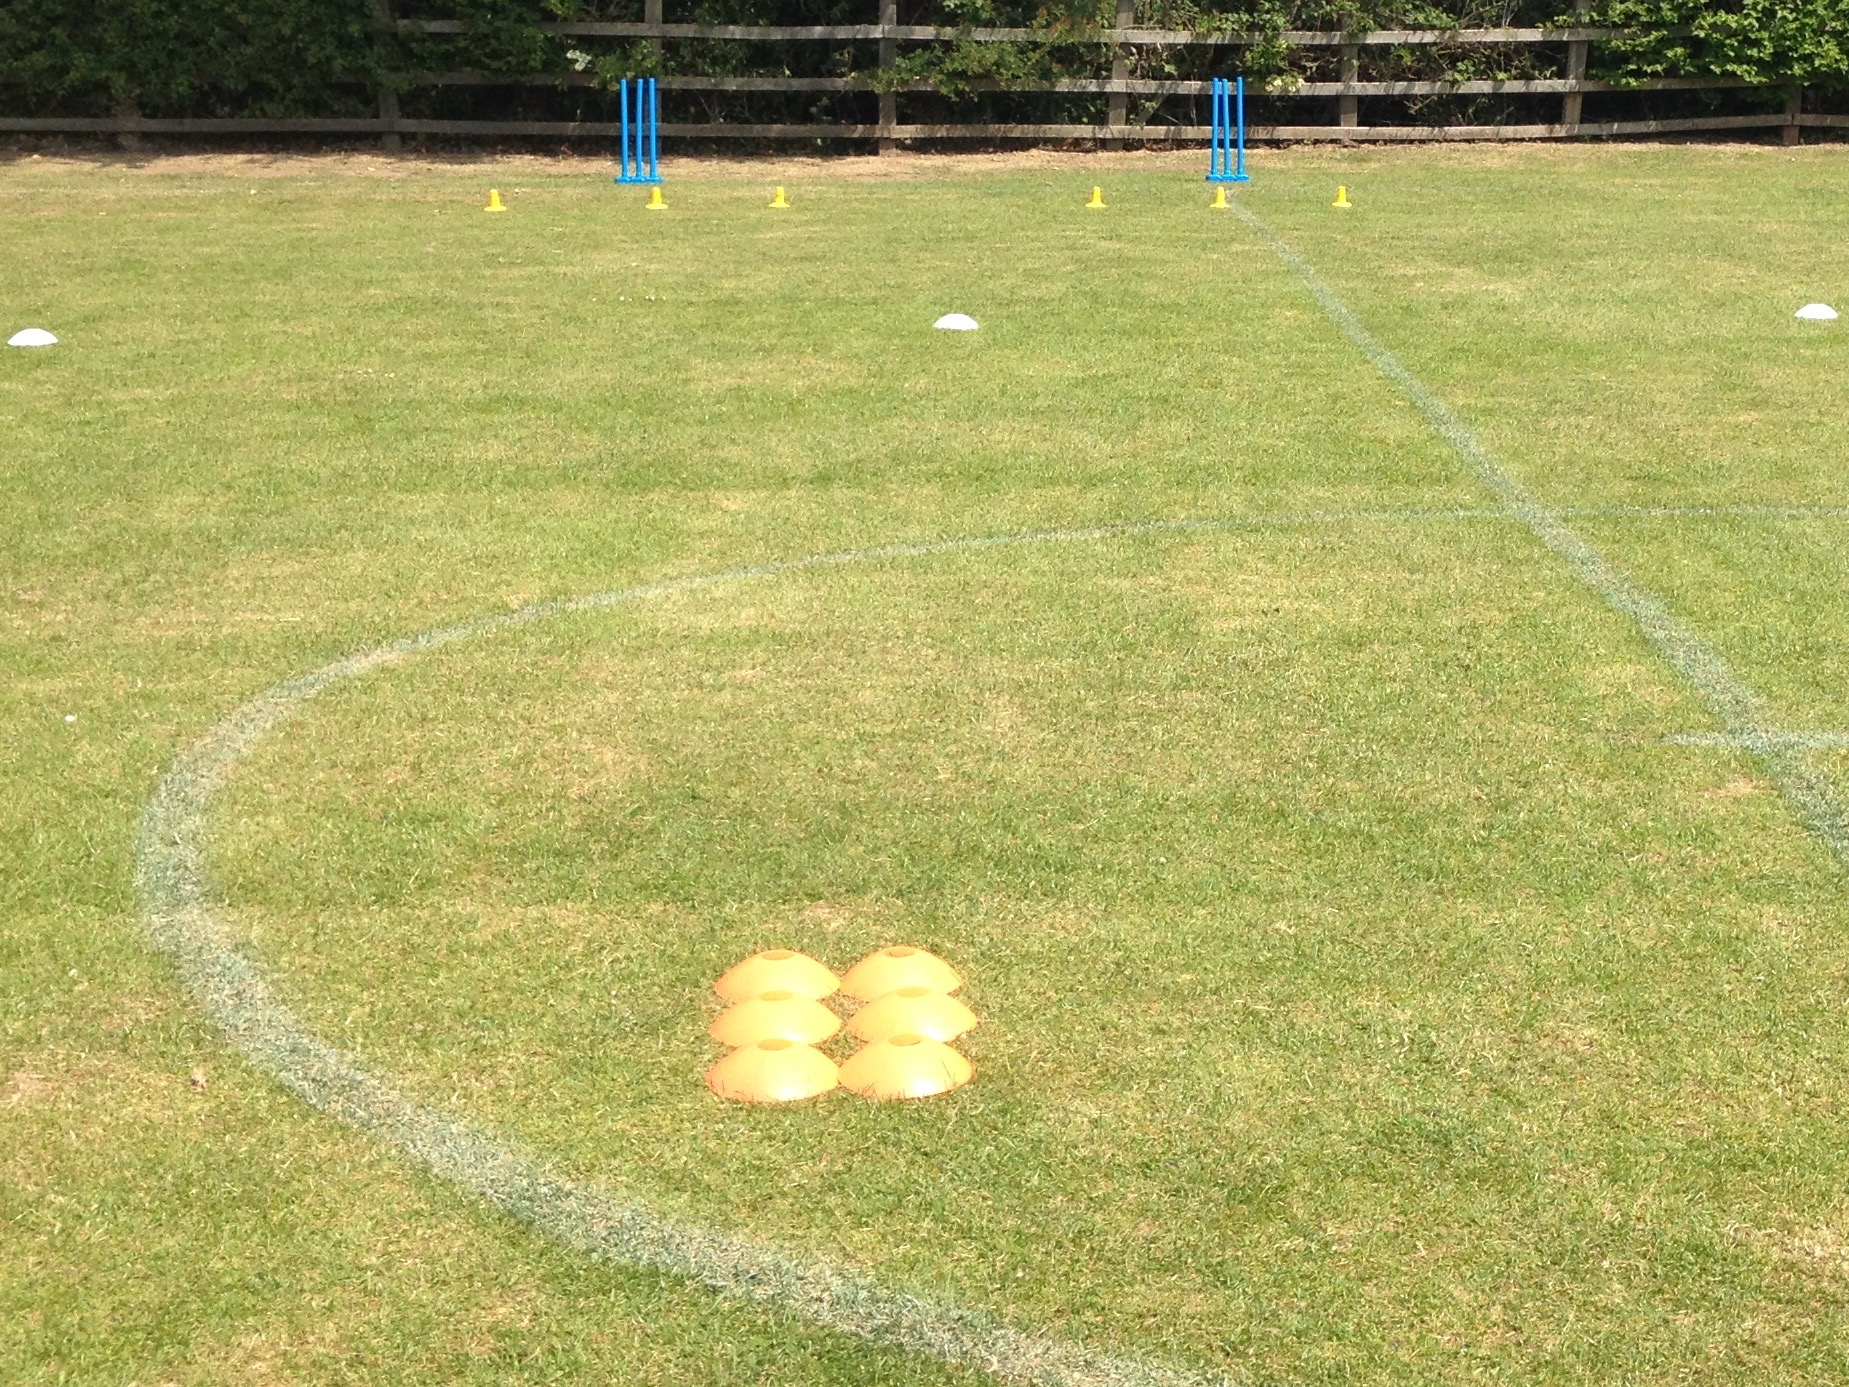 All set up for a Fun game of 3 tees cricket at Carlton Miniott School, Thirsk